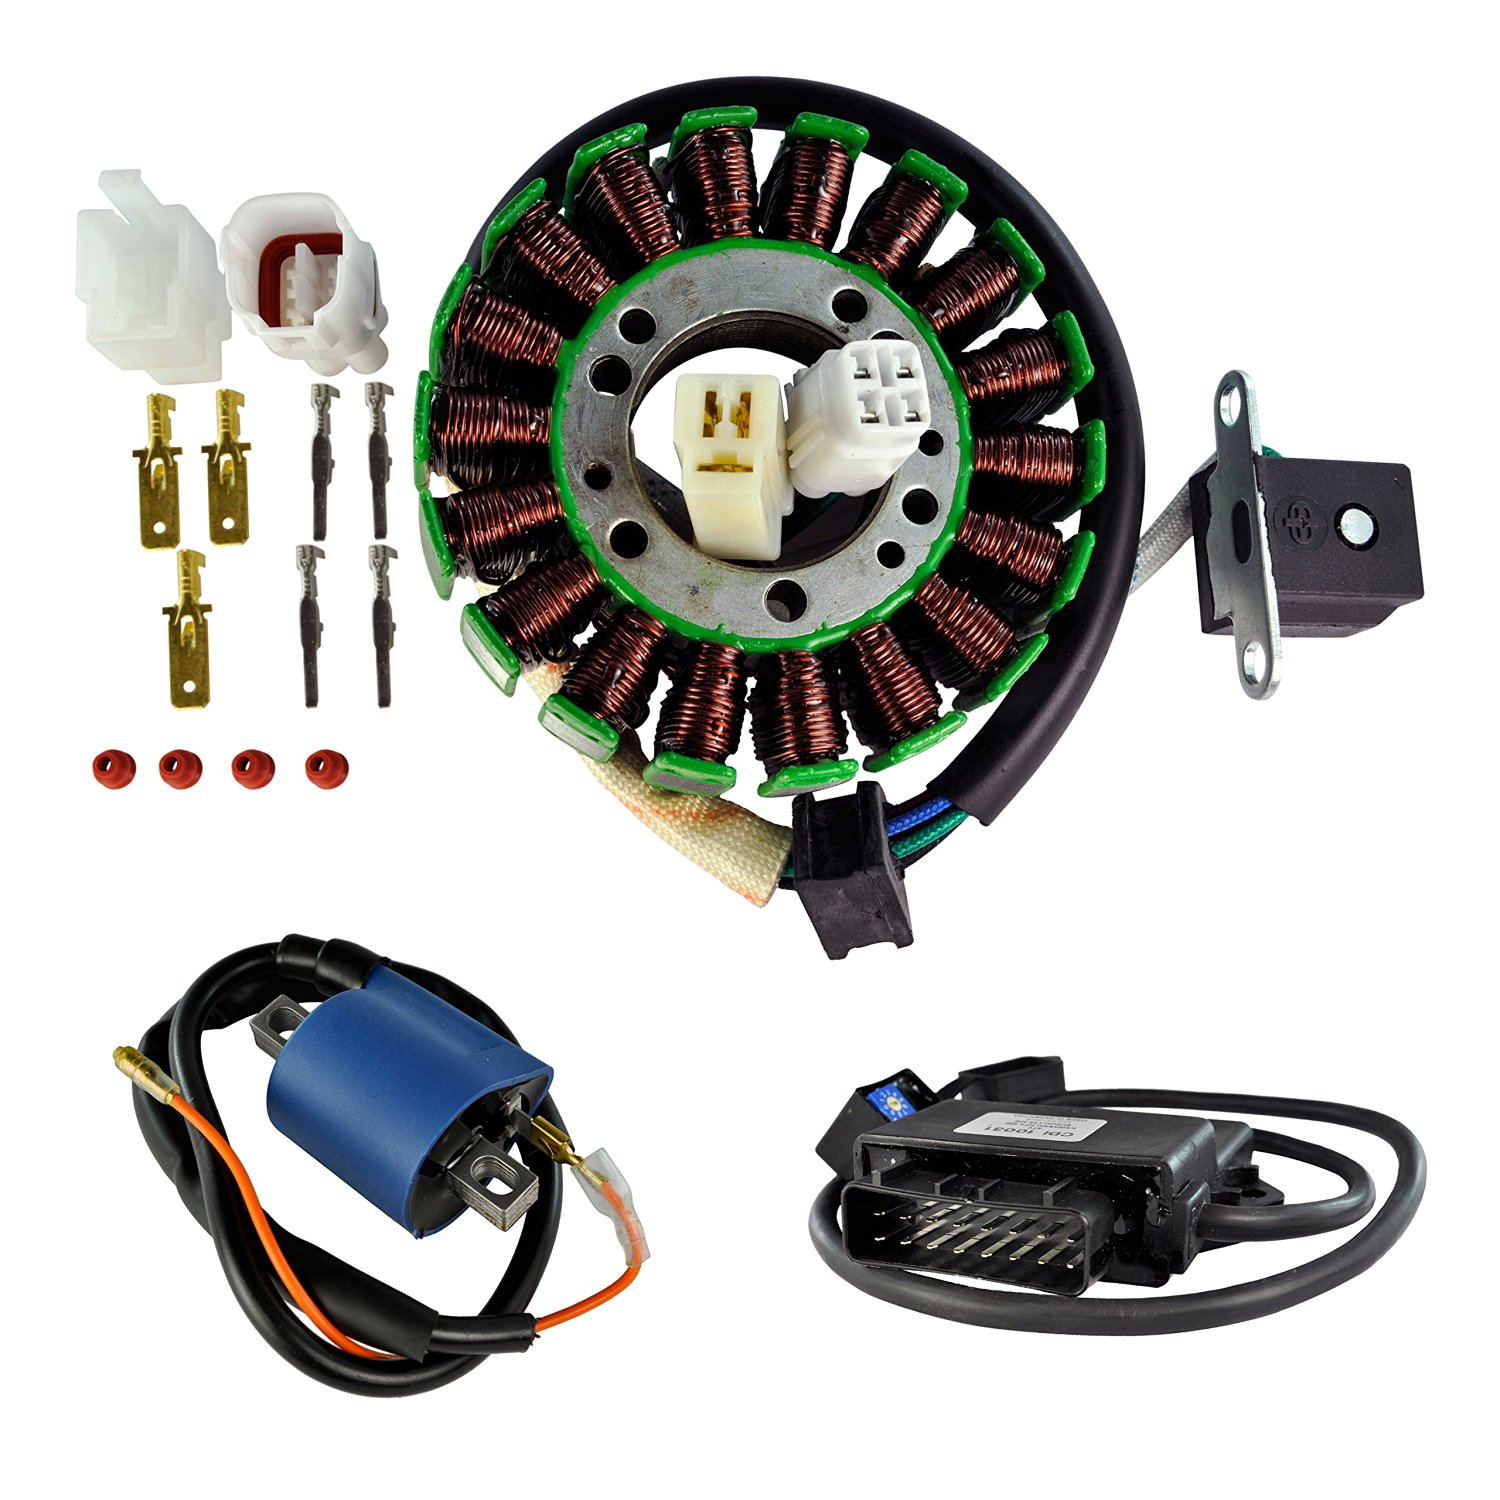 Kit HO Stator + HP CDI Box + External Ignition Coil For Suzuki LTZ 400 Quadsport 2003-2004